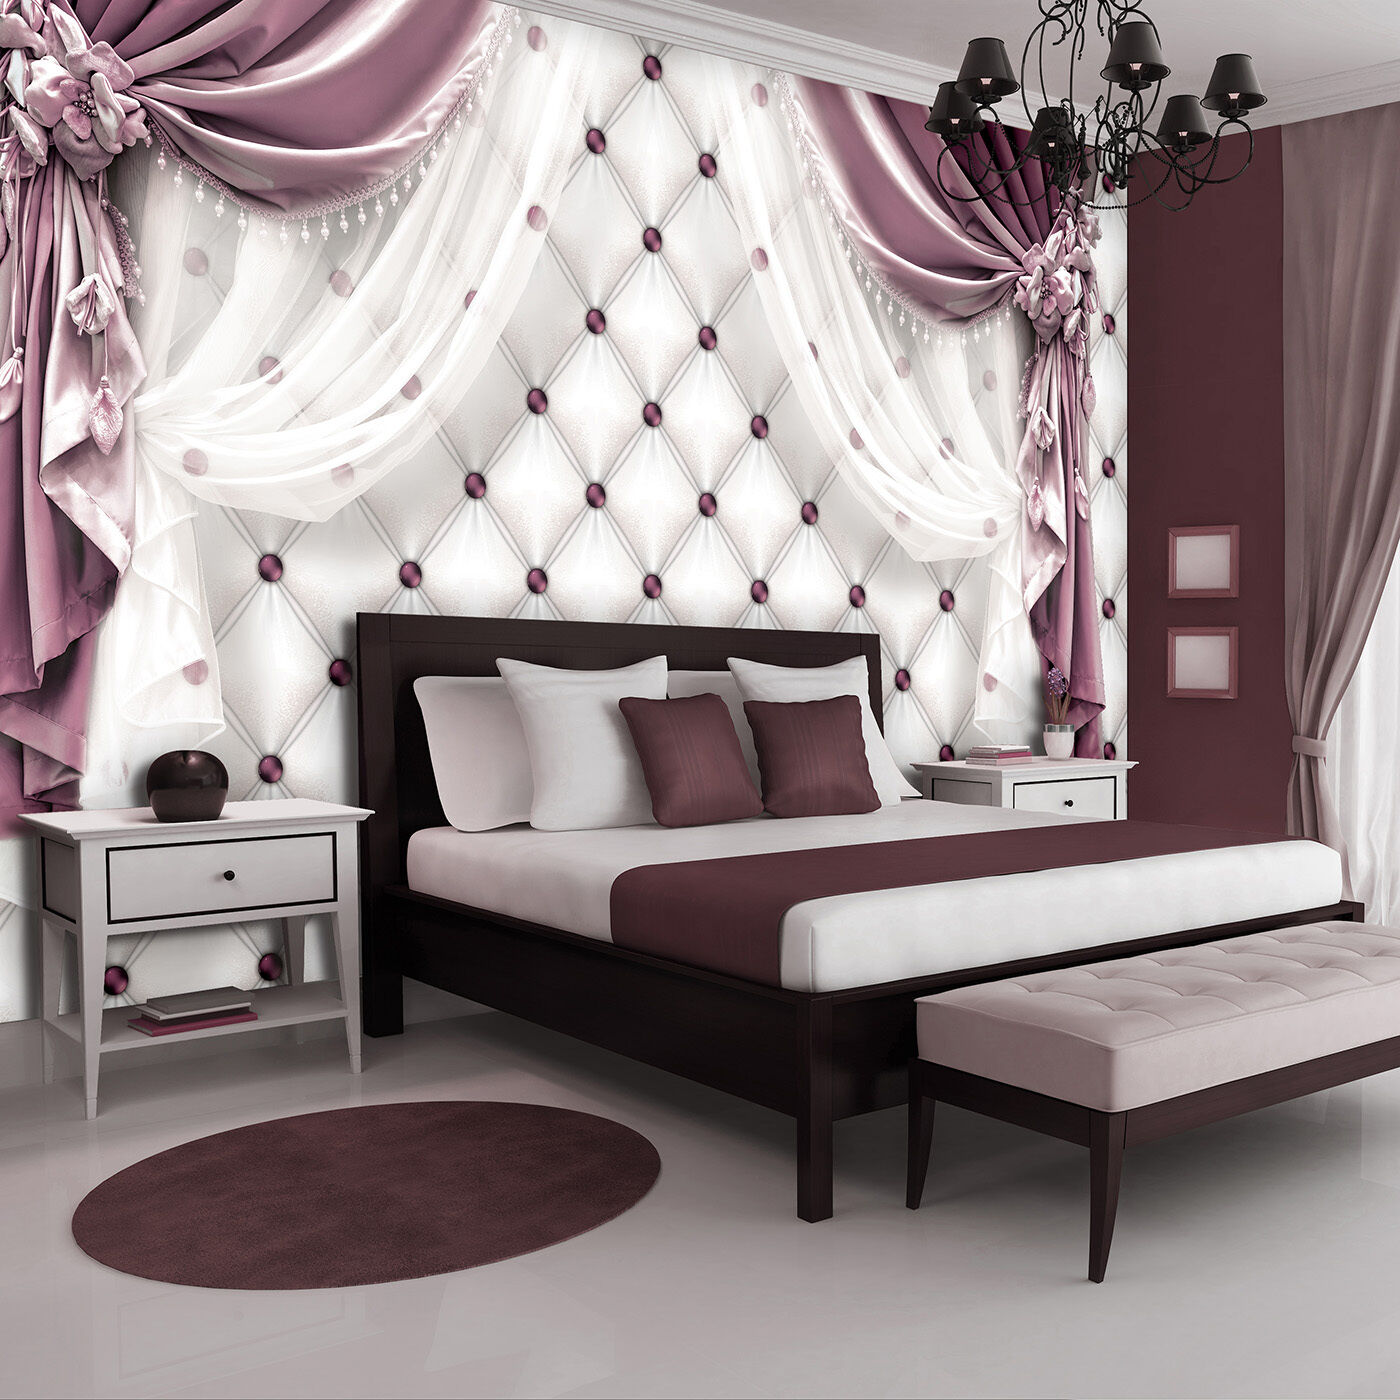 poster wandbild tapeten fototapete tapete stepp vorhang blumen rosa 3fx3560p8 eur 29 90. Black Bedroom Furniture Sets. Home Design Ideas